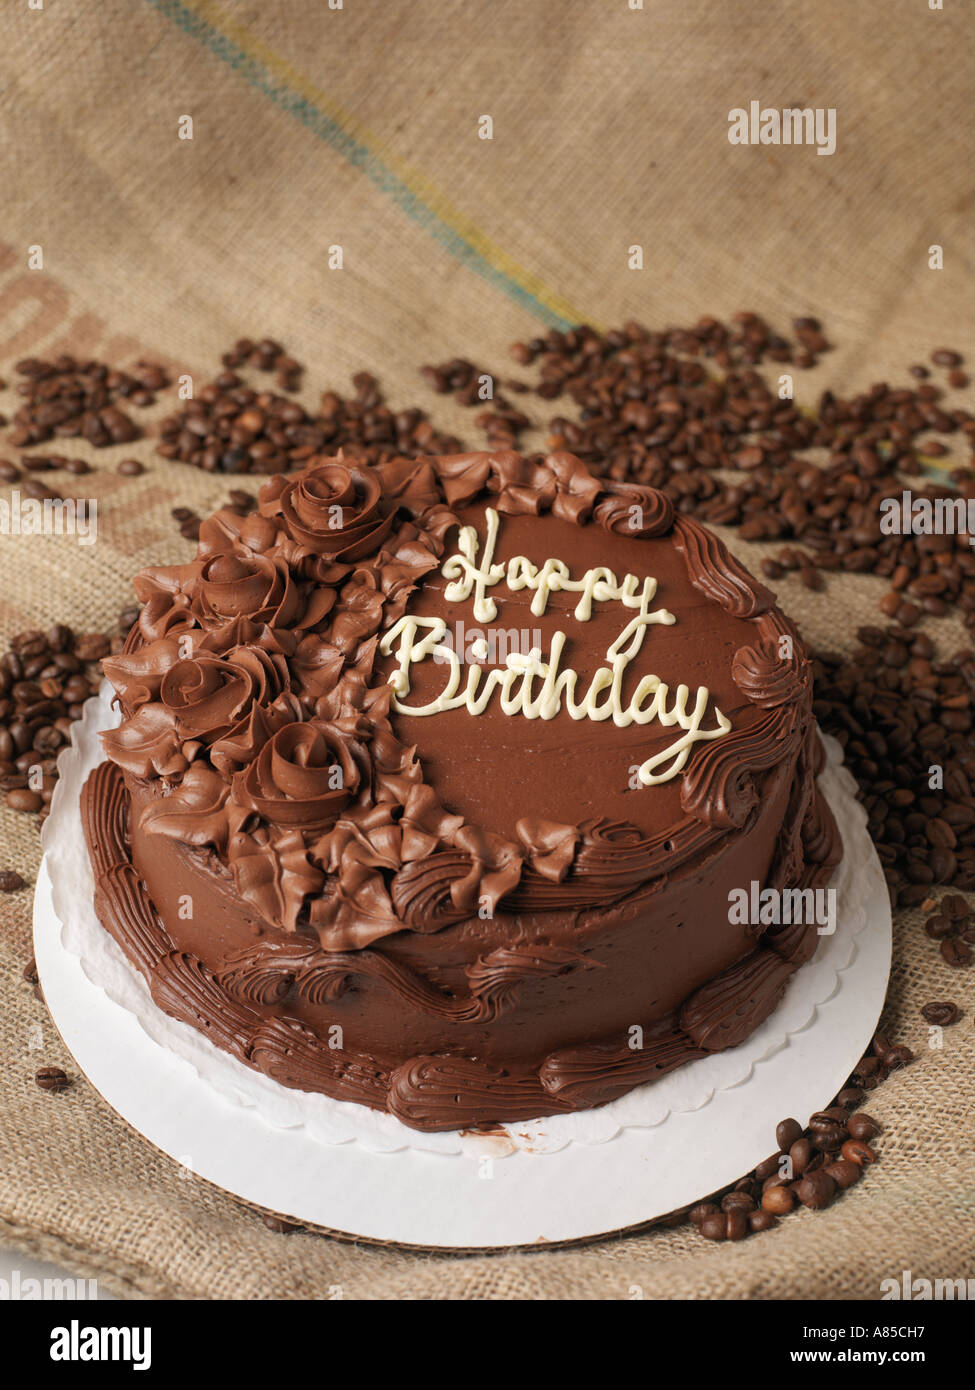 Astounding Chocolate Birthday Cake On Burlap Surrounded By Coffee Beans Stock Funny Birthday Cards Online Elaedamsfinfo